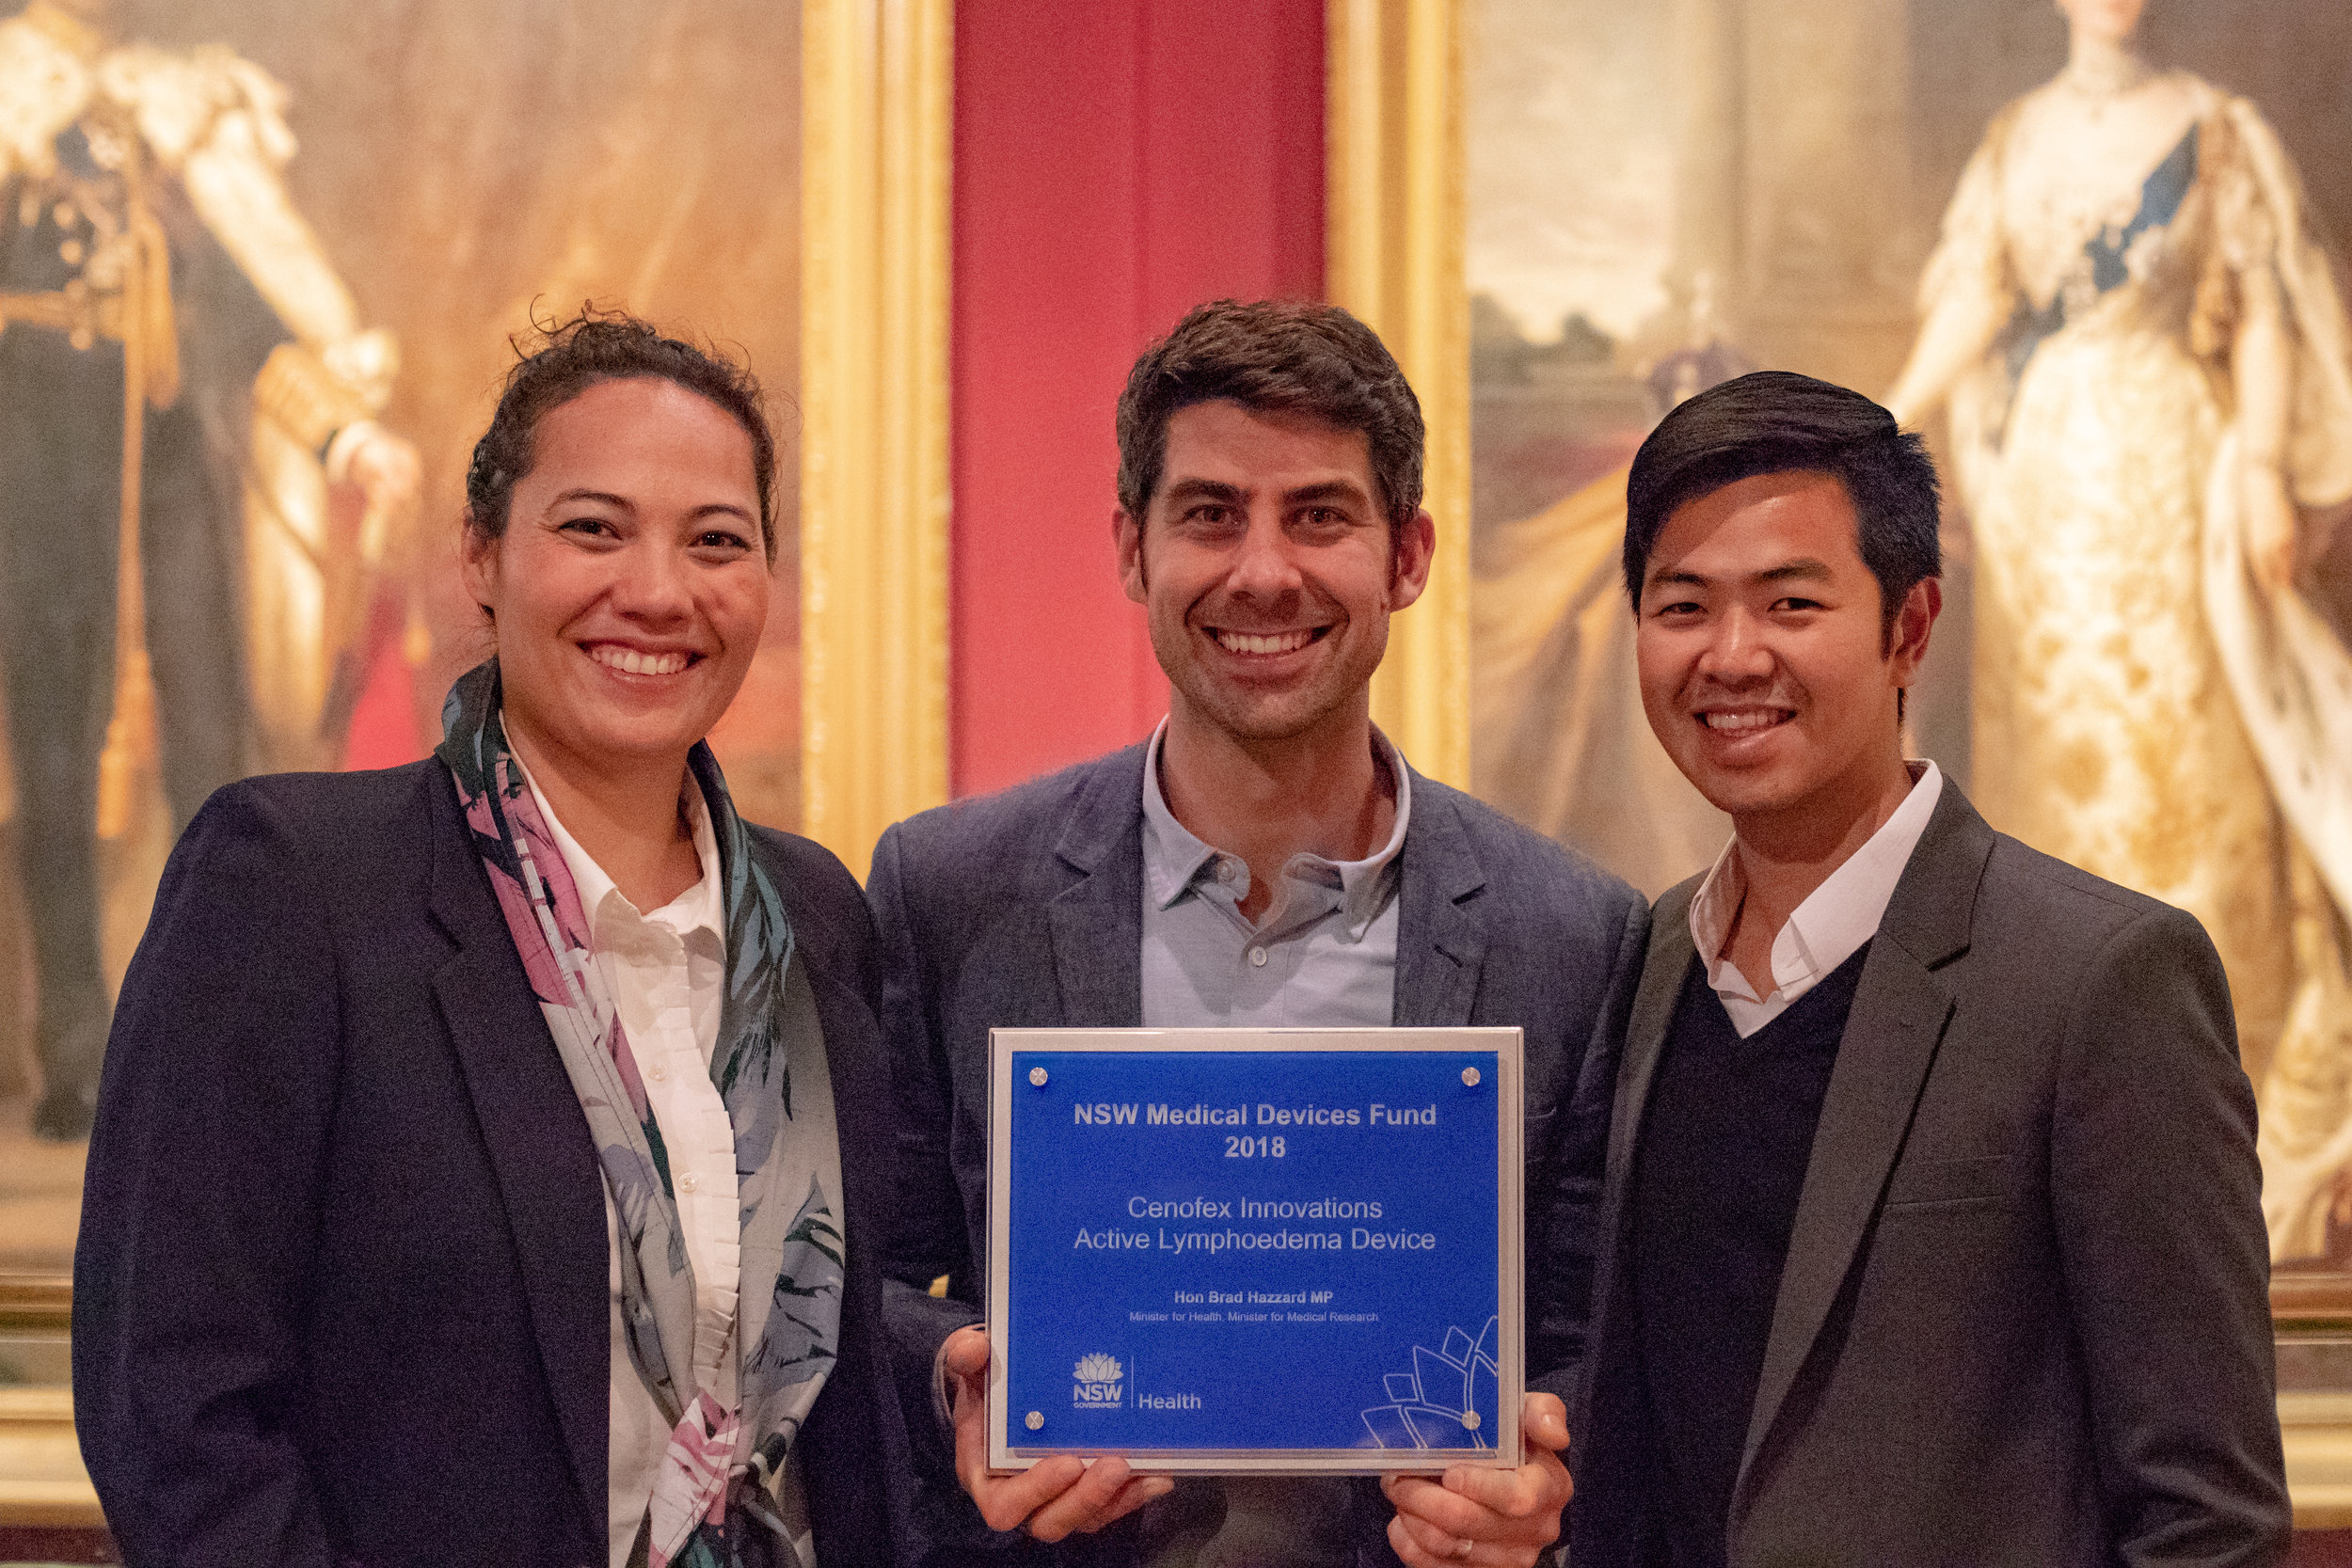 Left to right: Dr. Sheridan Gho, Dr. Michael Weaver and Mr. Tri Luong of Cenofex Innovations with the NSW Medical Devices Fund Award 2018 at NSW Parliament House.